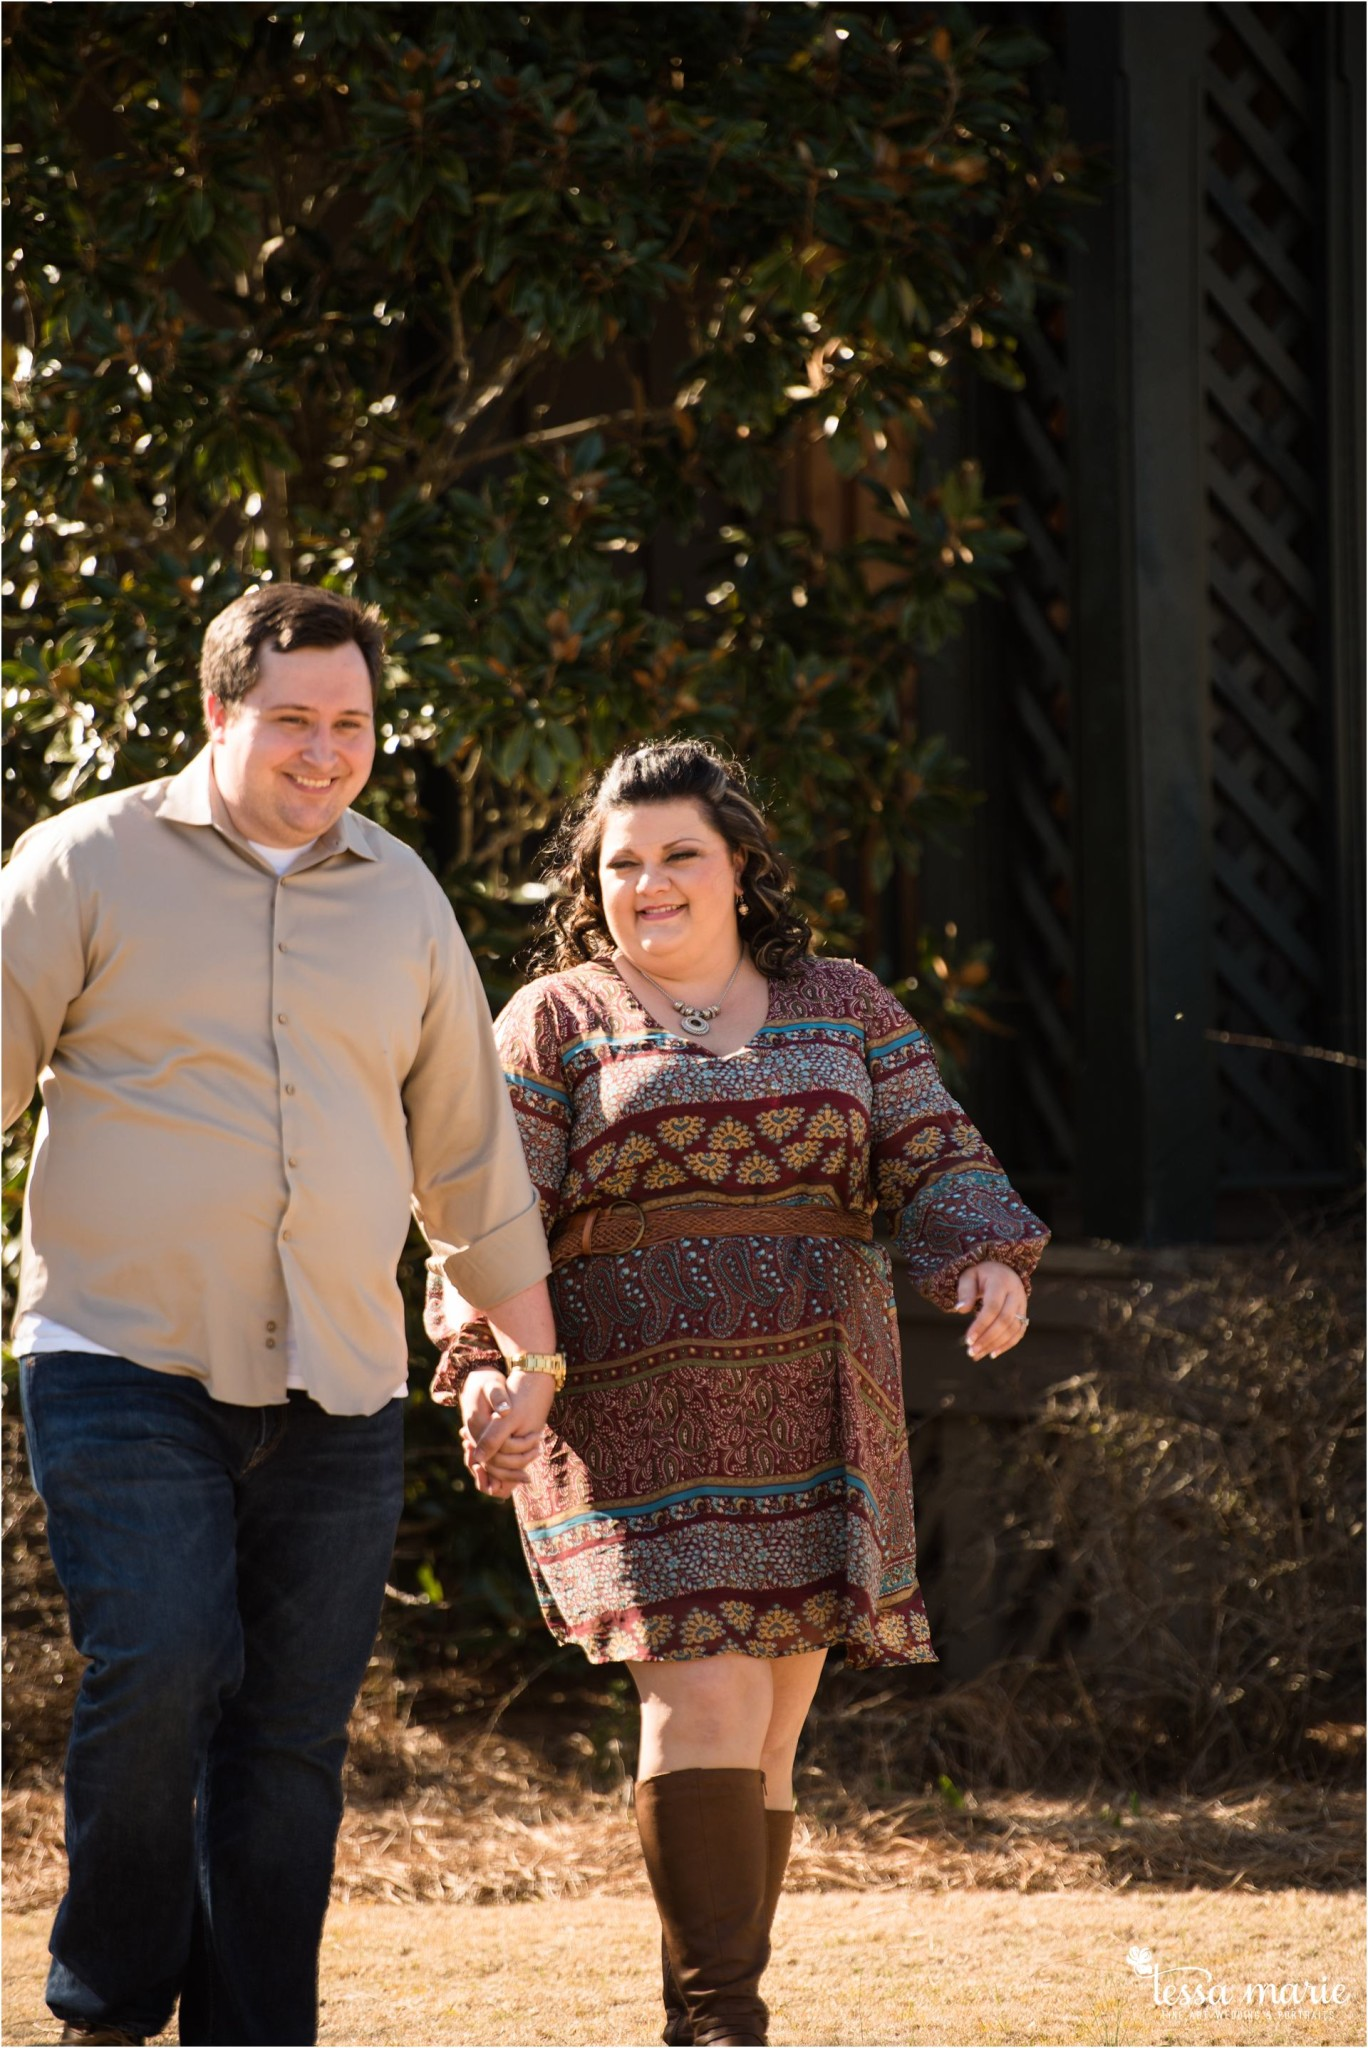 Barnsley_gardens_engagement_pictures_wedding_photographer_0002